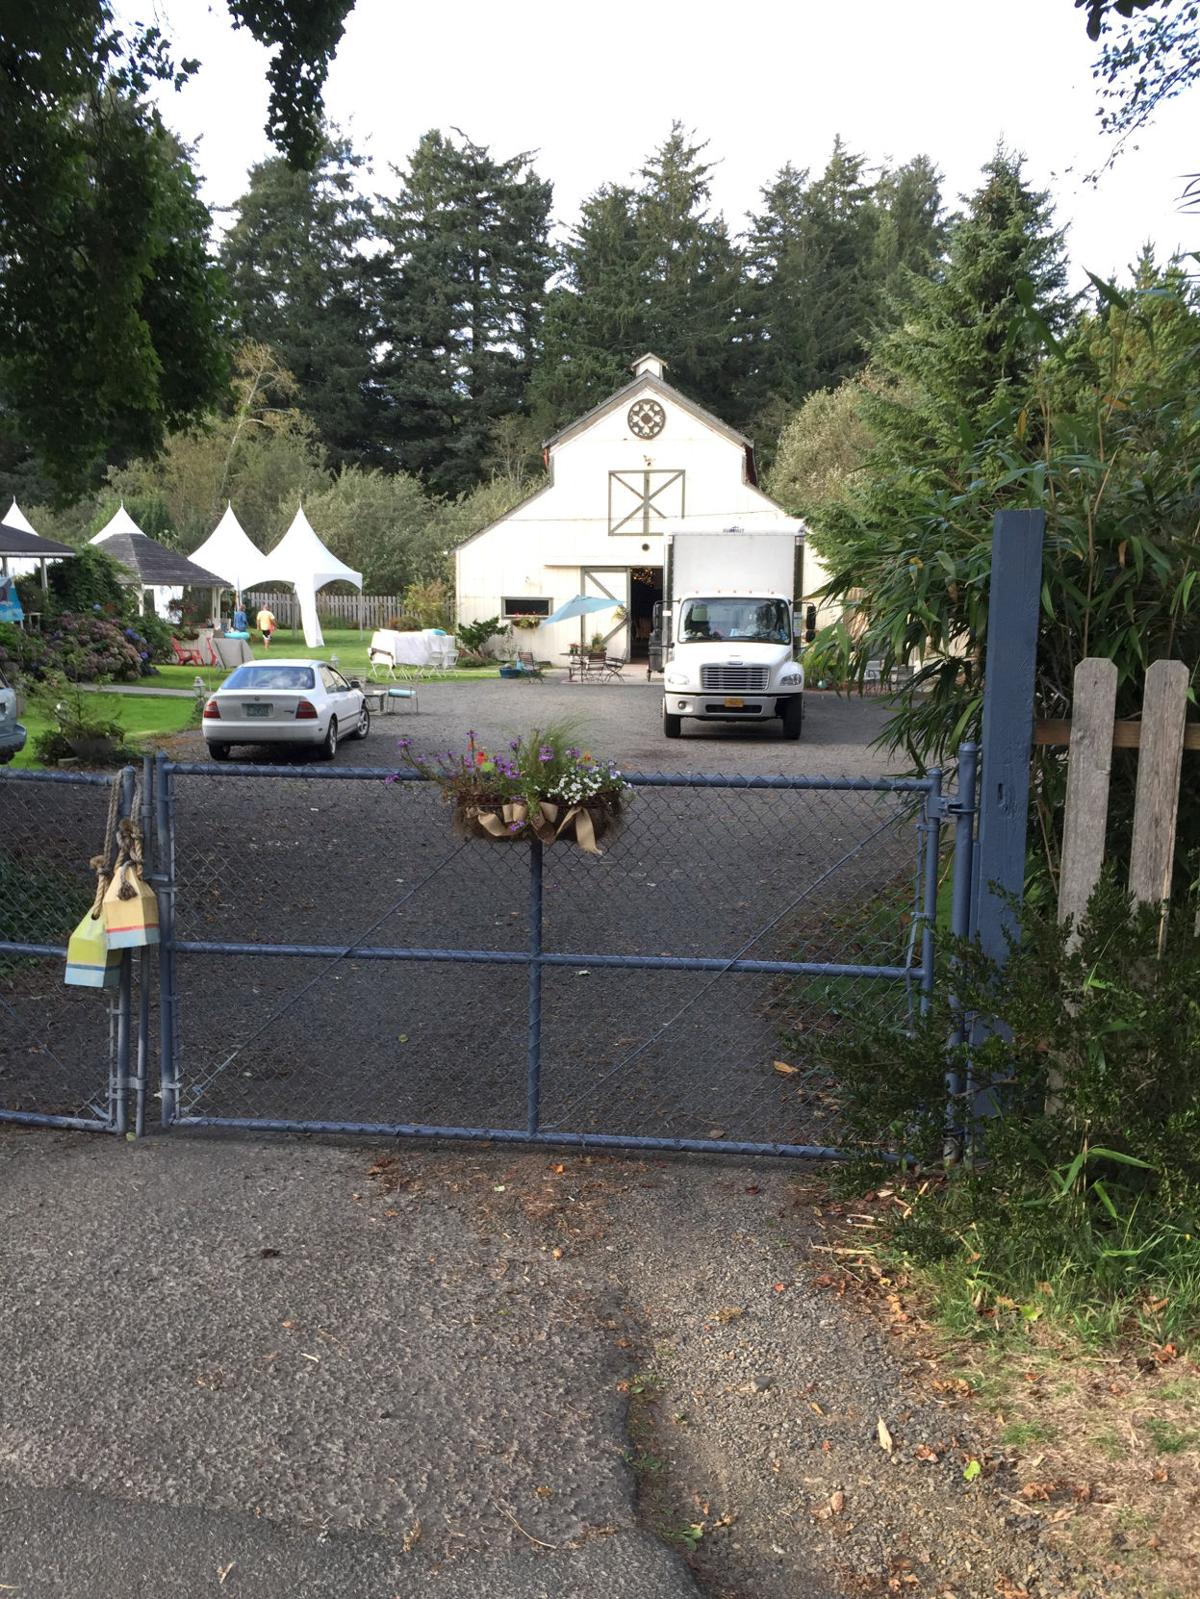 Neacoxie barn owner asks Gearhart to drop fines